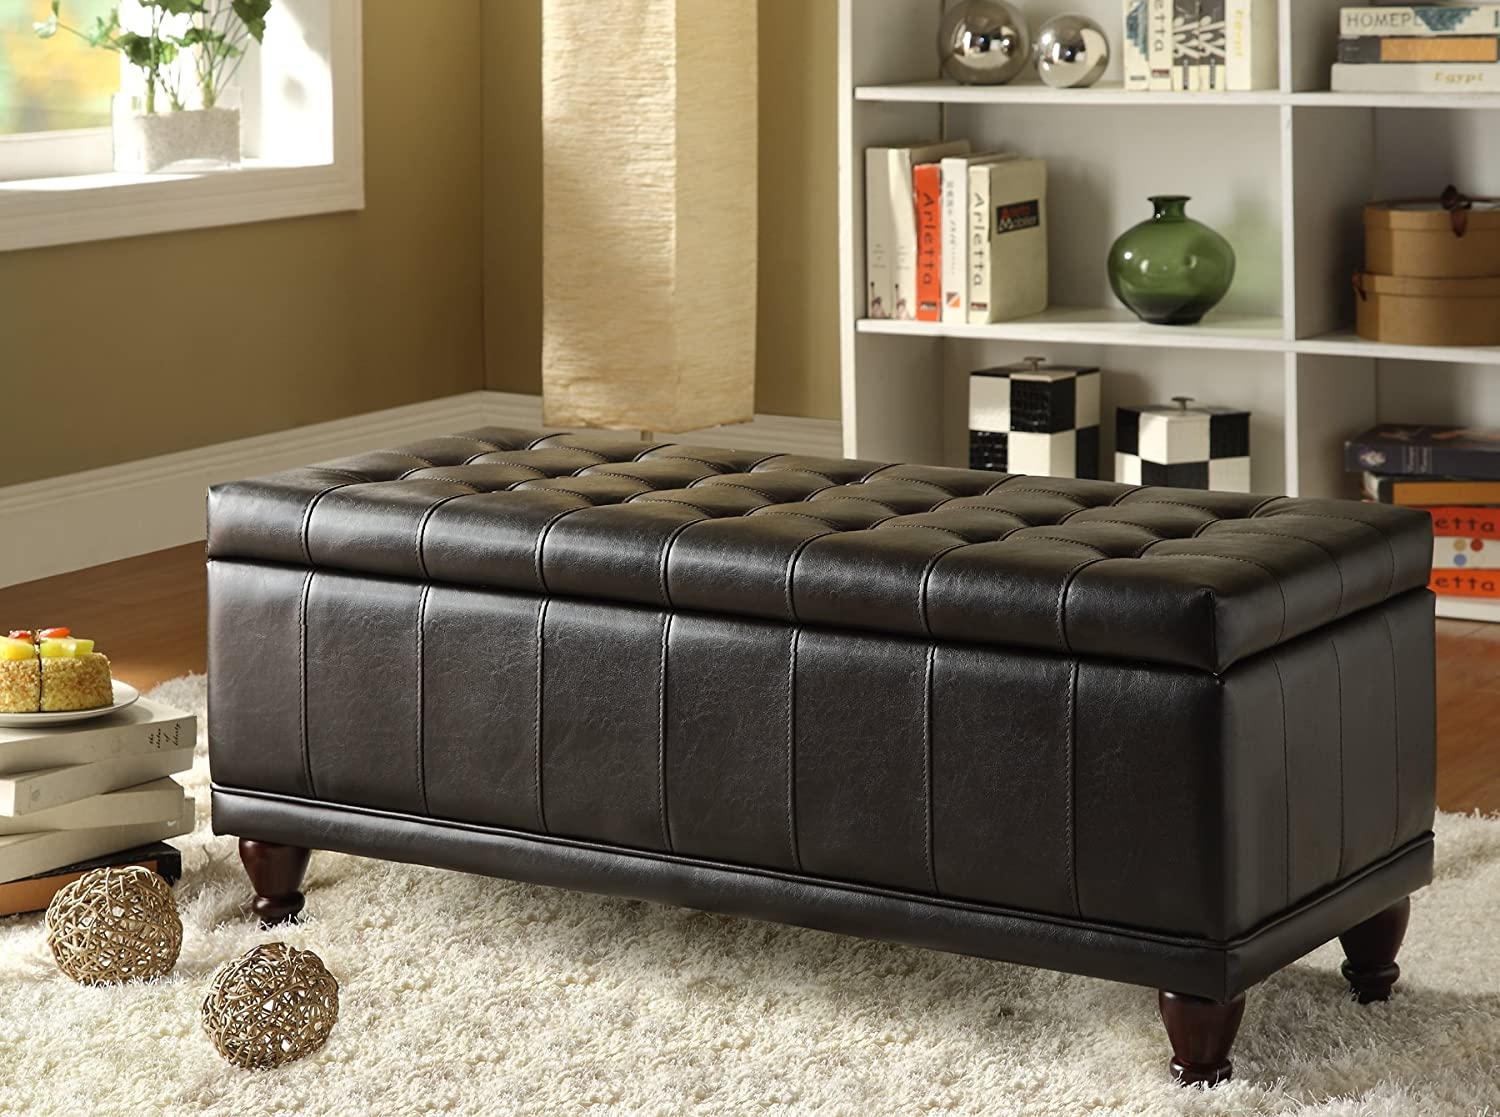 Amazon.com Homelegance 4730PU Lift Top Storage Bench with Tufted Accents Dark Brown Faux Leather Kitchen u0026 Dining & Amazon.com: Homelegance 4730PU Lift Top Storage Bench with Tufted ...